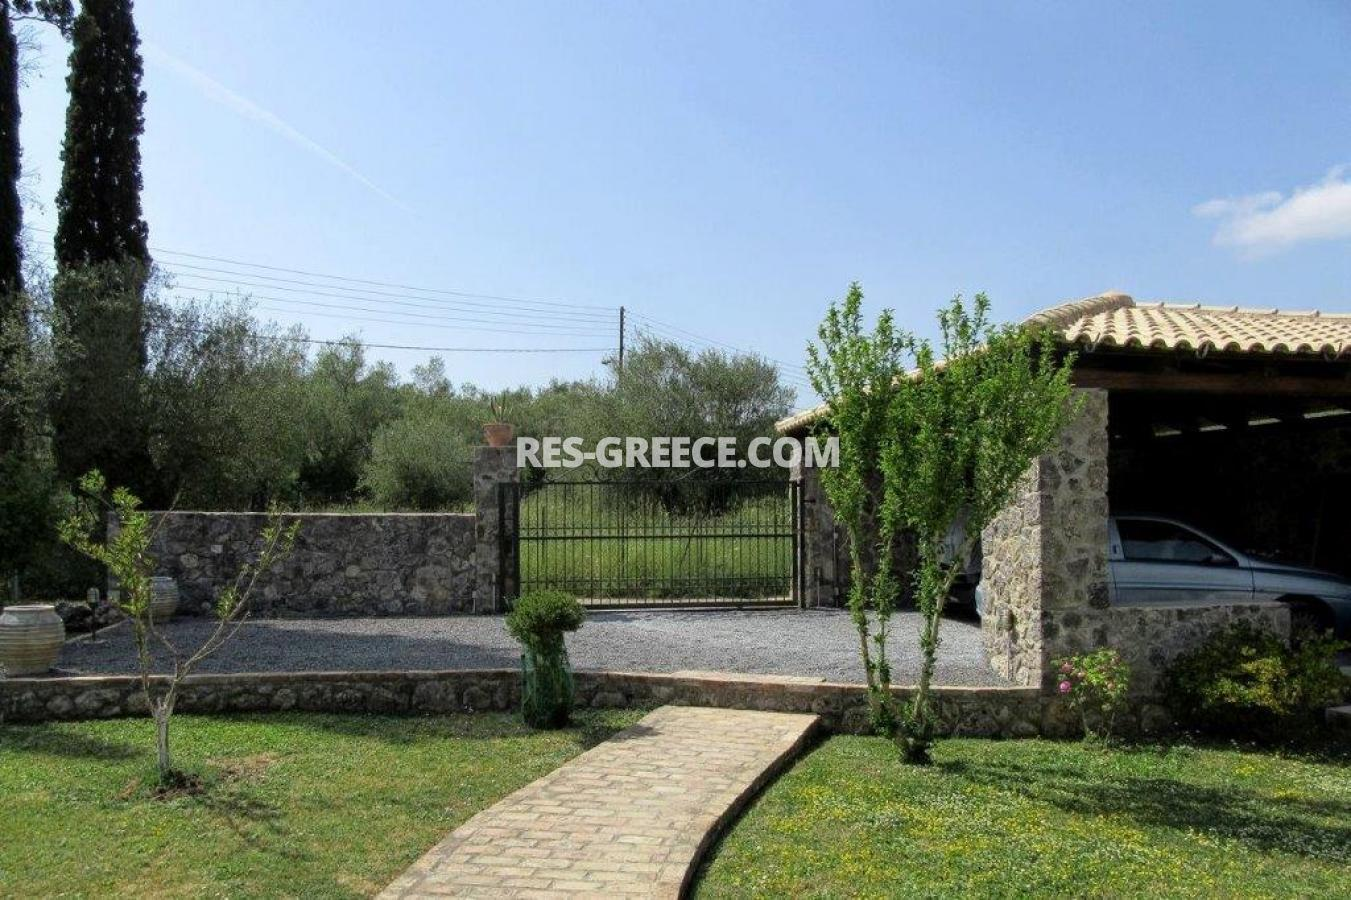 Poulades, Ionian Islands, Greece - Mediterranean bungalow for sale in Corfu - Photo 17